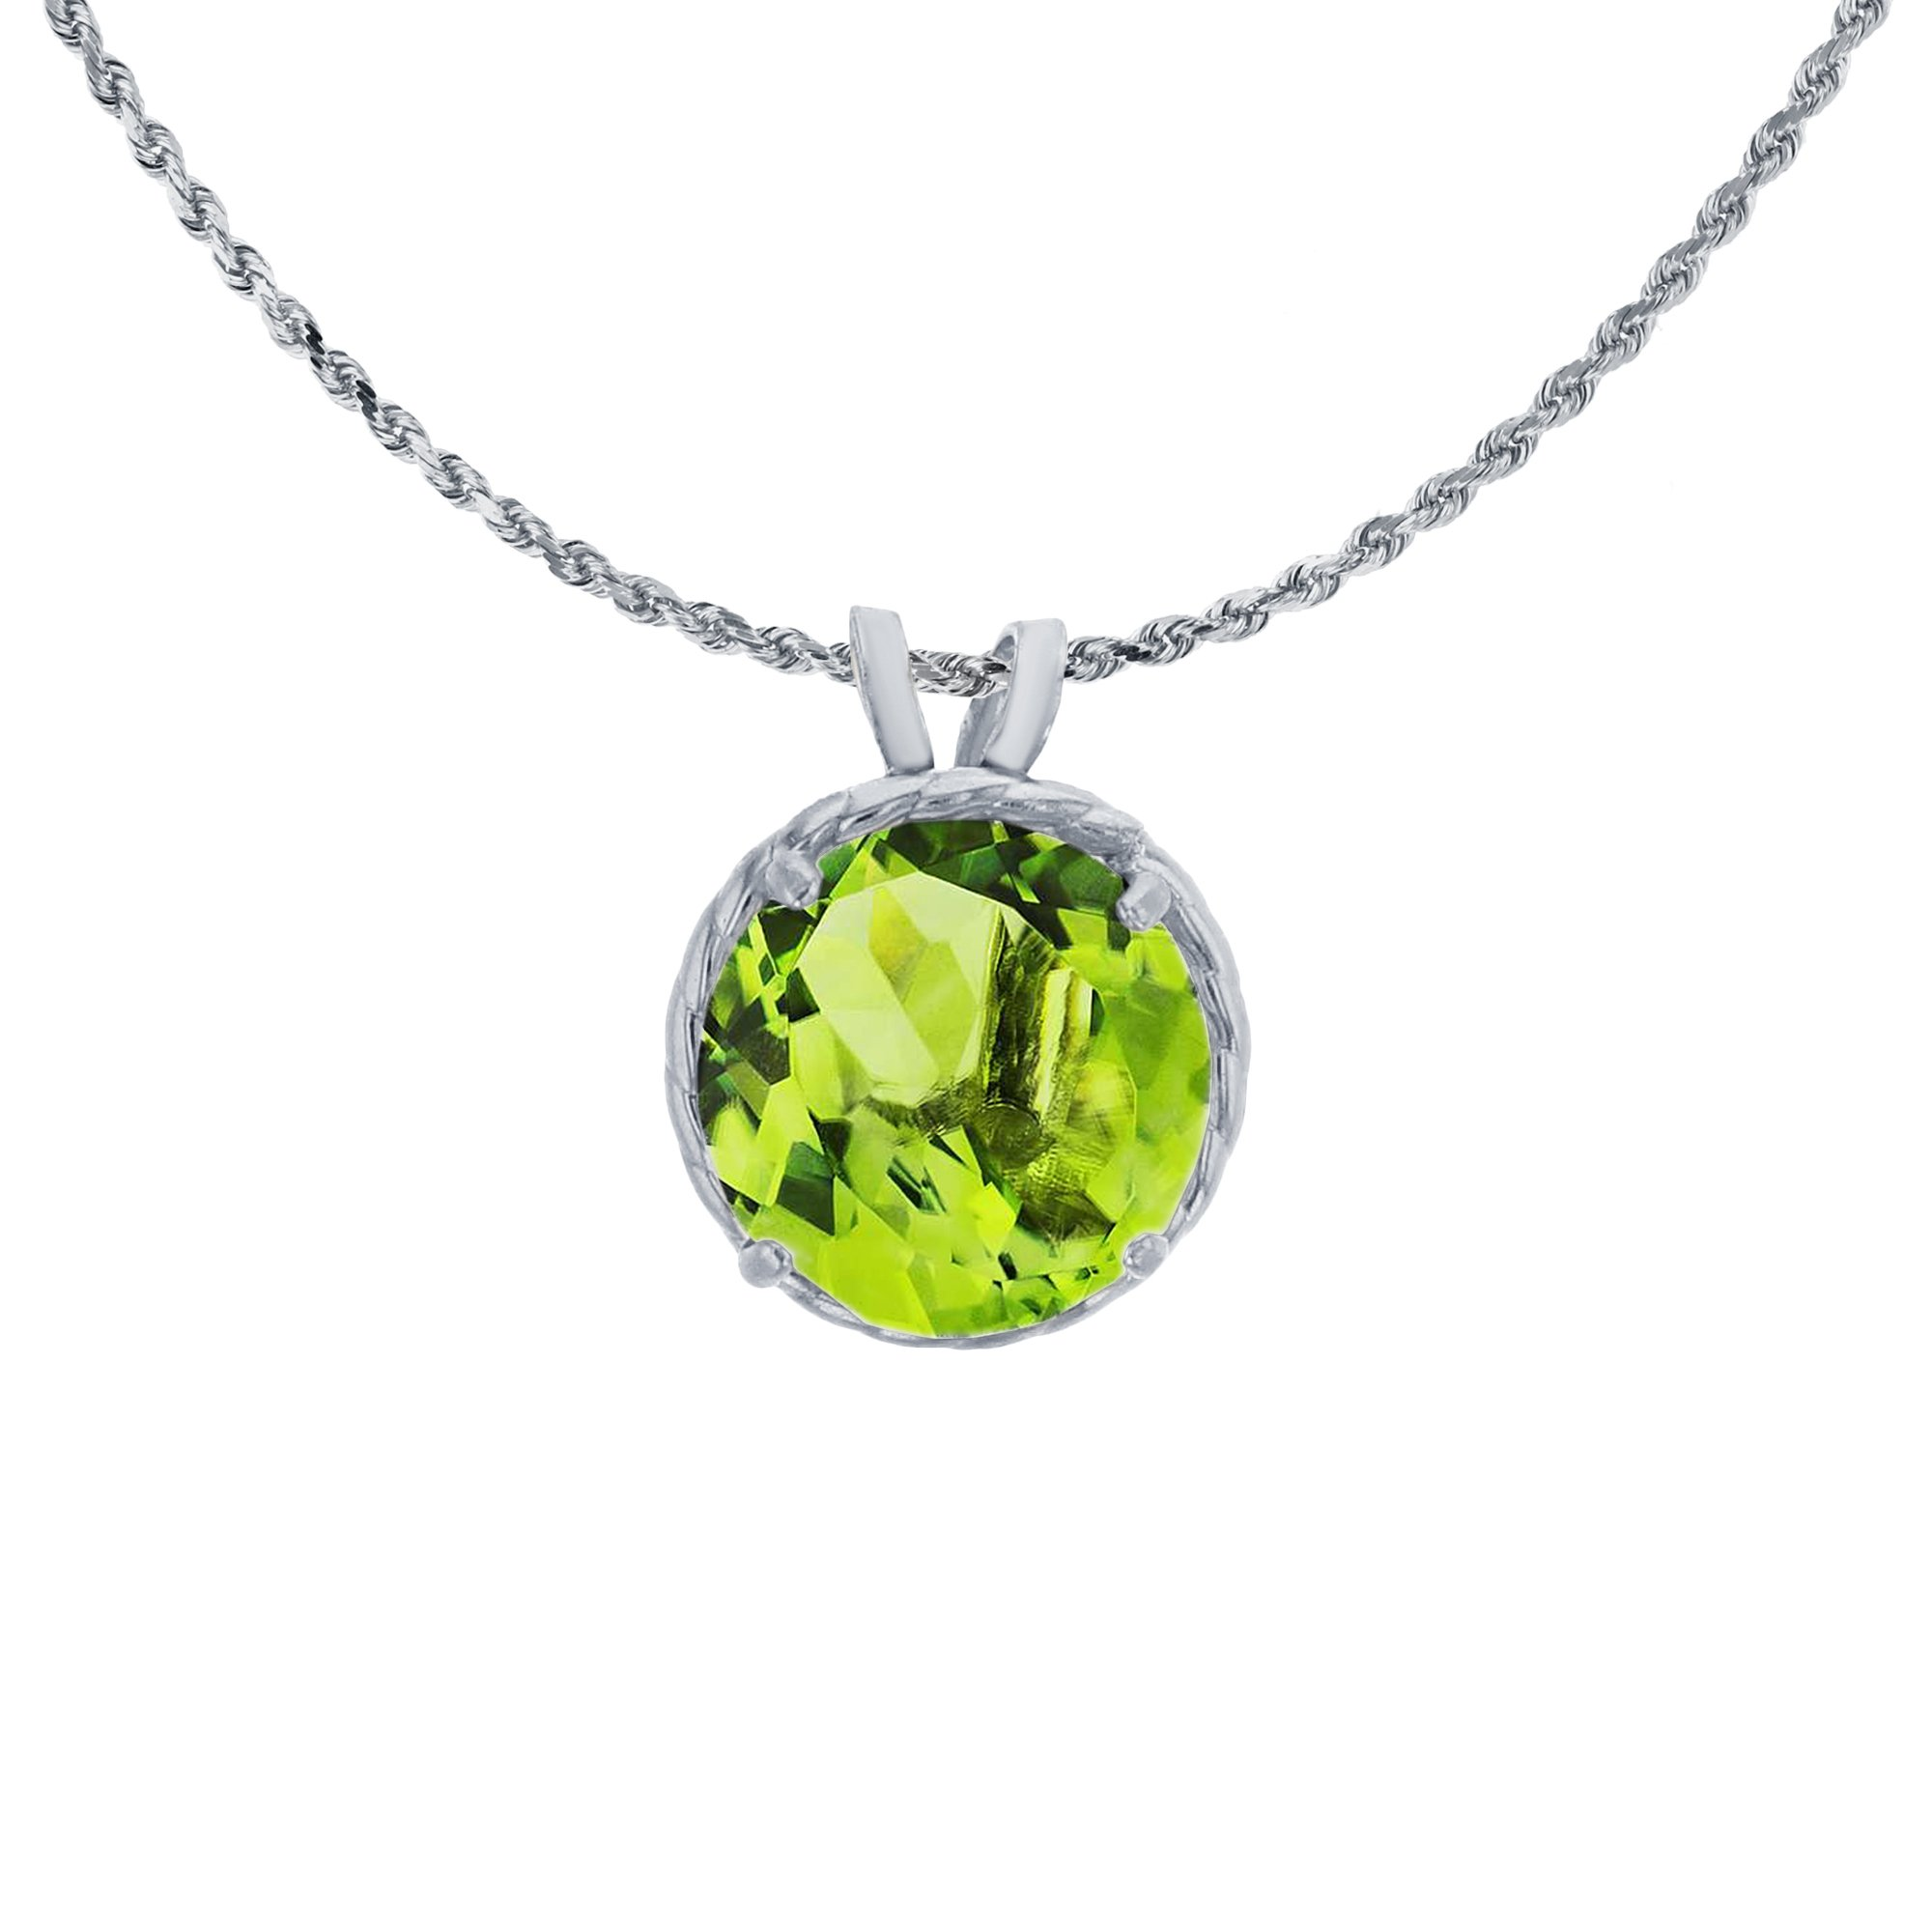 14K White Gold 7mm Round Cut Peridot Rope Frame Rabbit Ear 18'' Rope Chain Necklace by Decadence